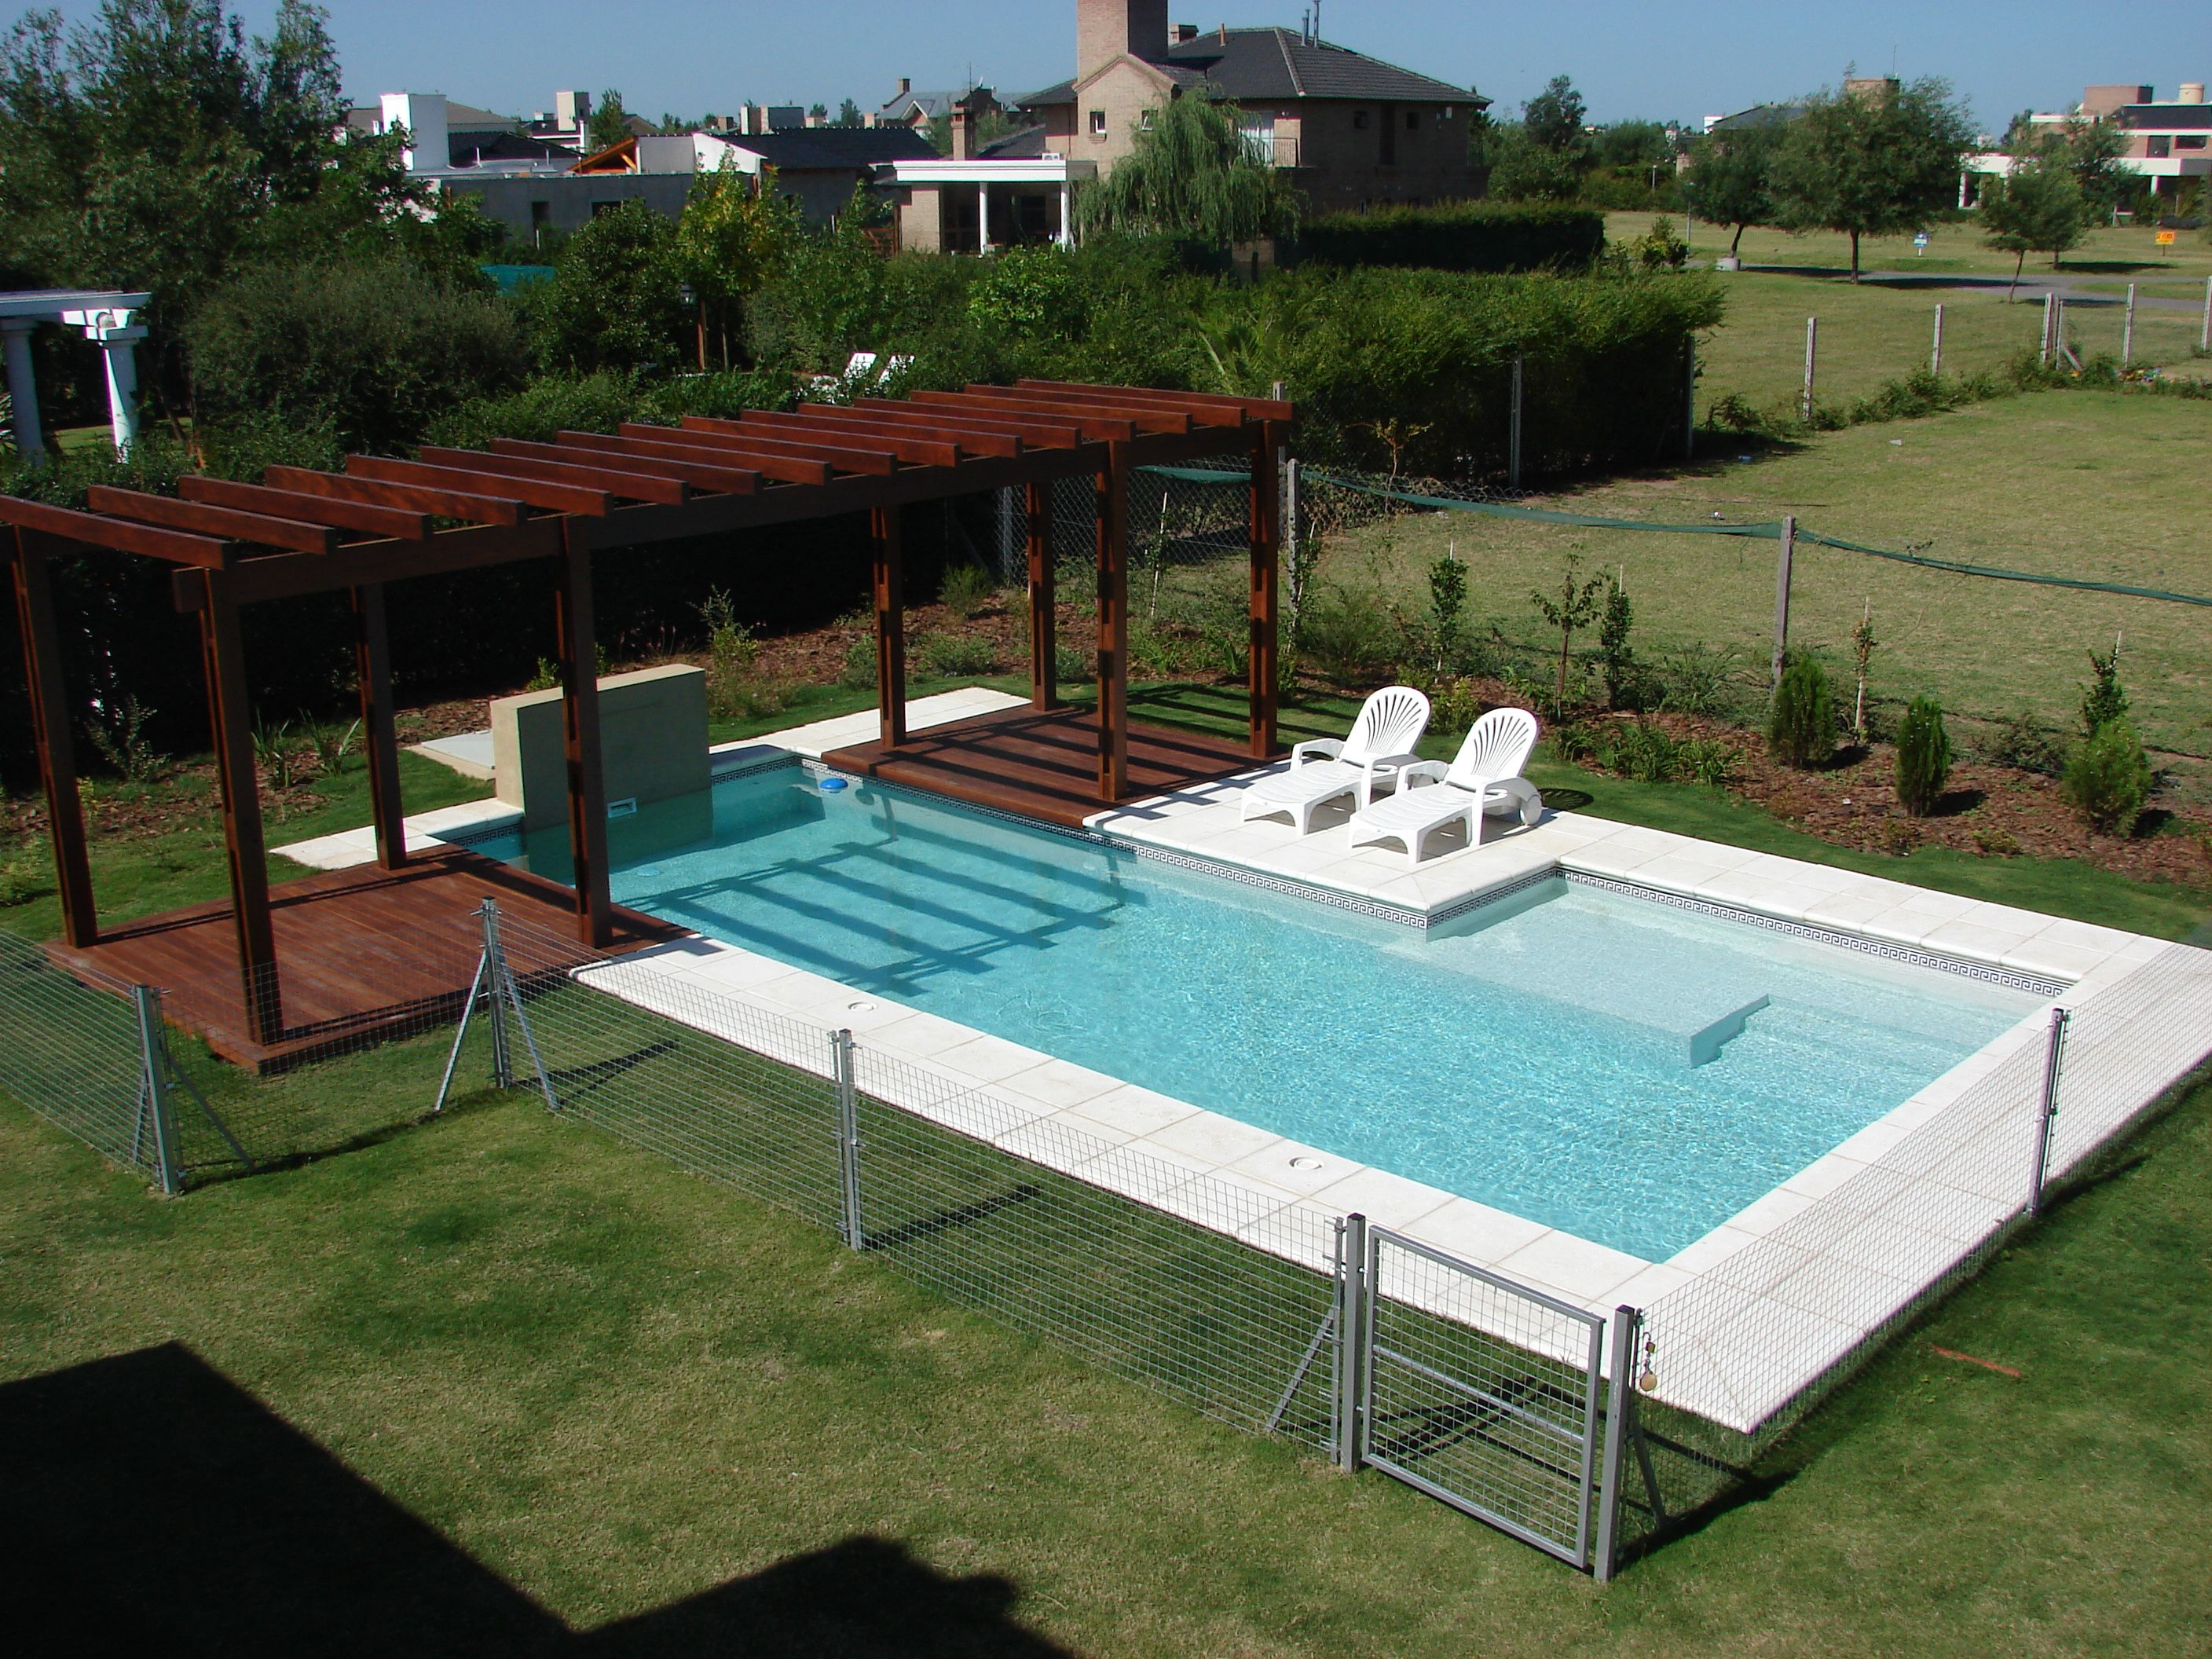 Piscina familiar pergola madera deck muro con for Piscinas de madera